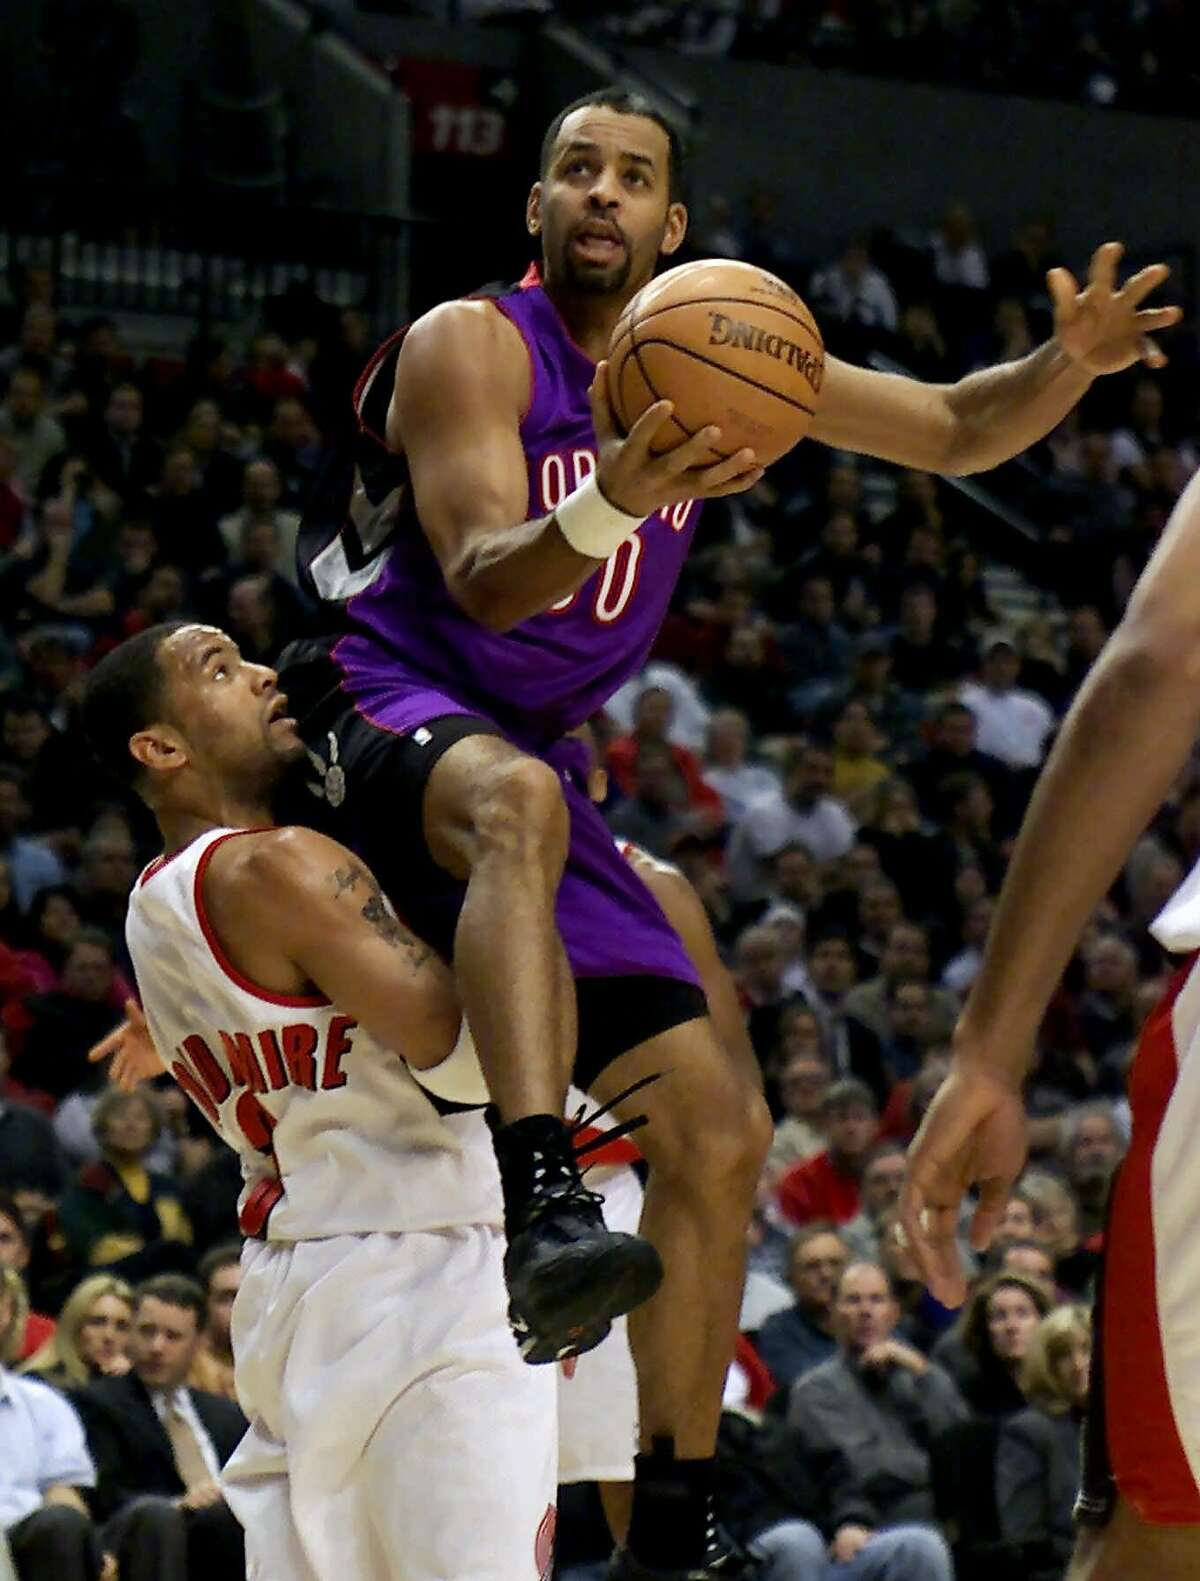 Toronto Raptors' Dell Curry lands on top of Trail Blazers' Damon Stoudamire as he drives to the hoop during their NBA game Wednesday, Dec. 6, 2000, in Portland, Ore.(AP Photo/Jack Smith)